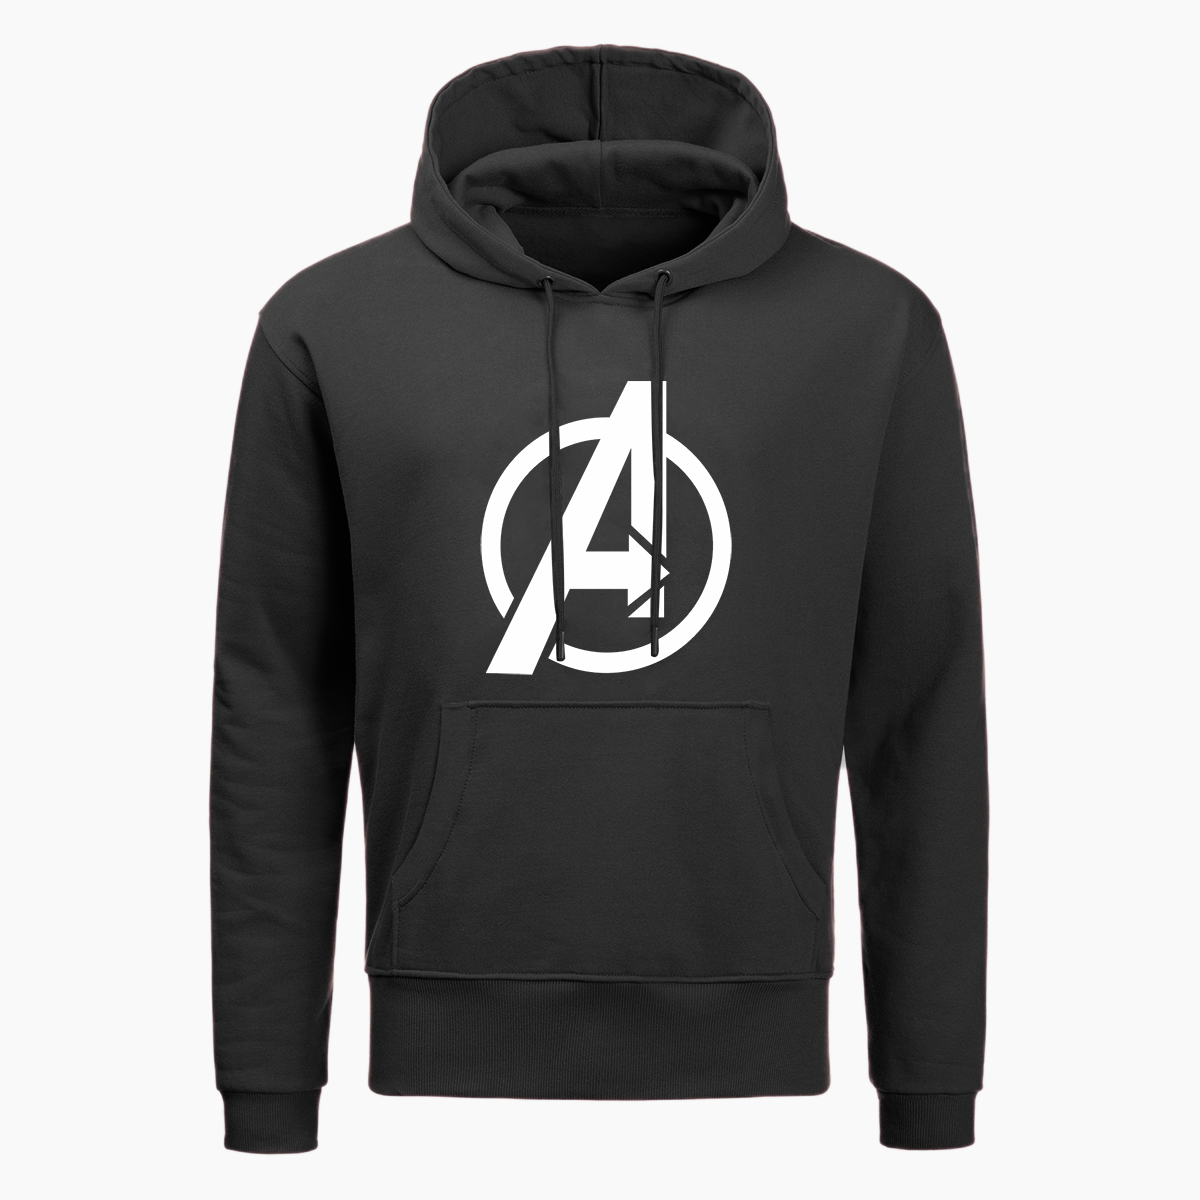 New Marvel The Avengers Costume Hoodies Men Hooded Brand 2019 Autumn And Winter Avengers End Game Sweatshirt Jacket